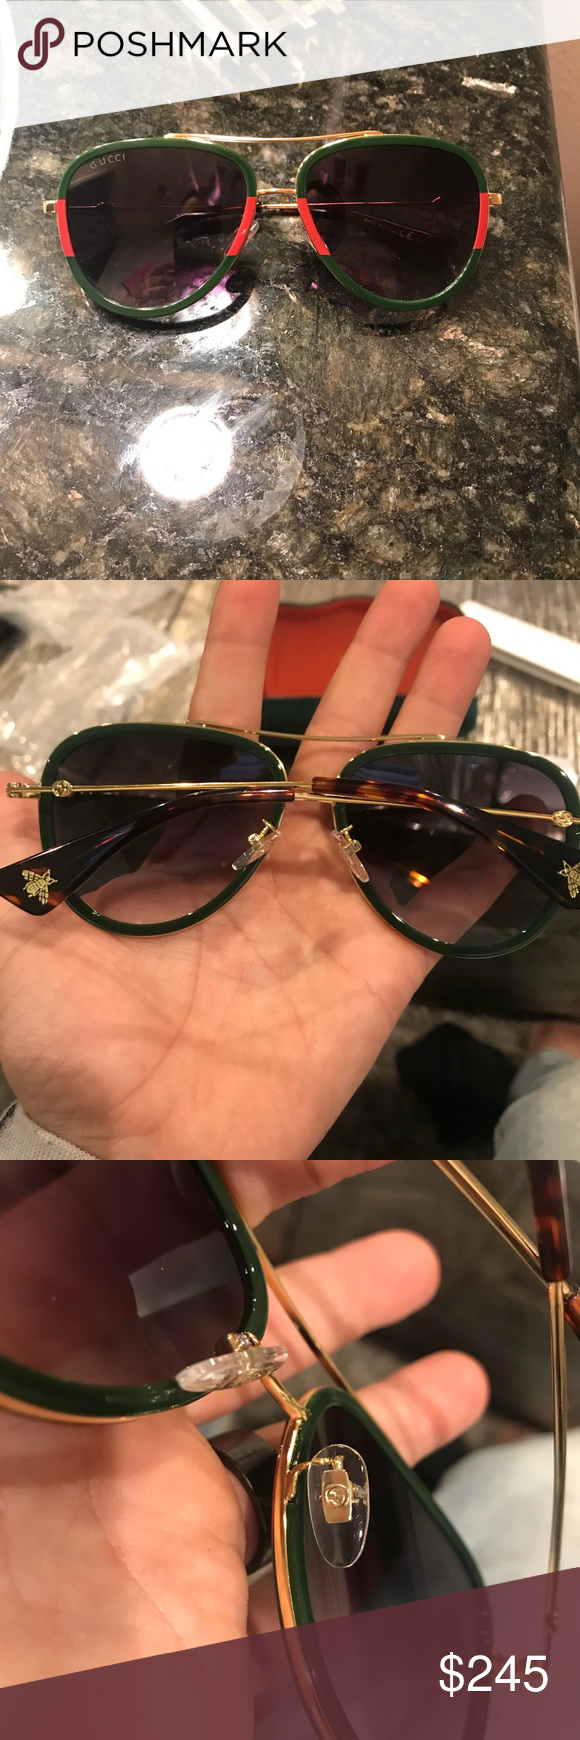 f8529b97fdc Gucci 100% Authentic Aviator sunglasses GG 0062 Gucci GG 0062 please review  photos. Actual photos of sunglasses. Sickening! Retail at Bloomingdales is   400 ...